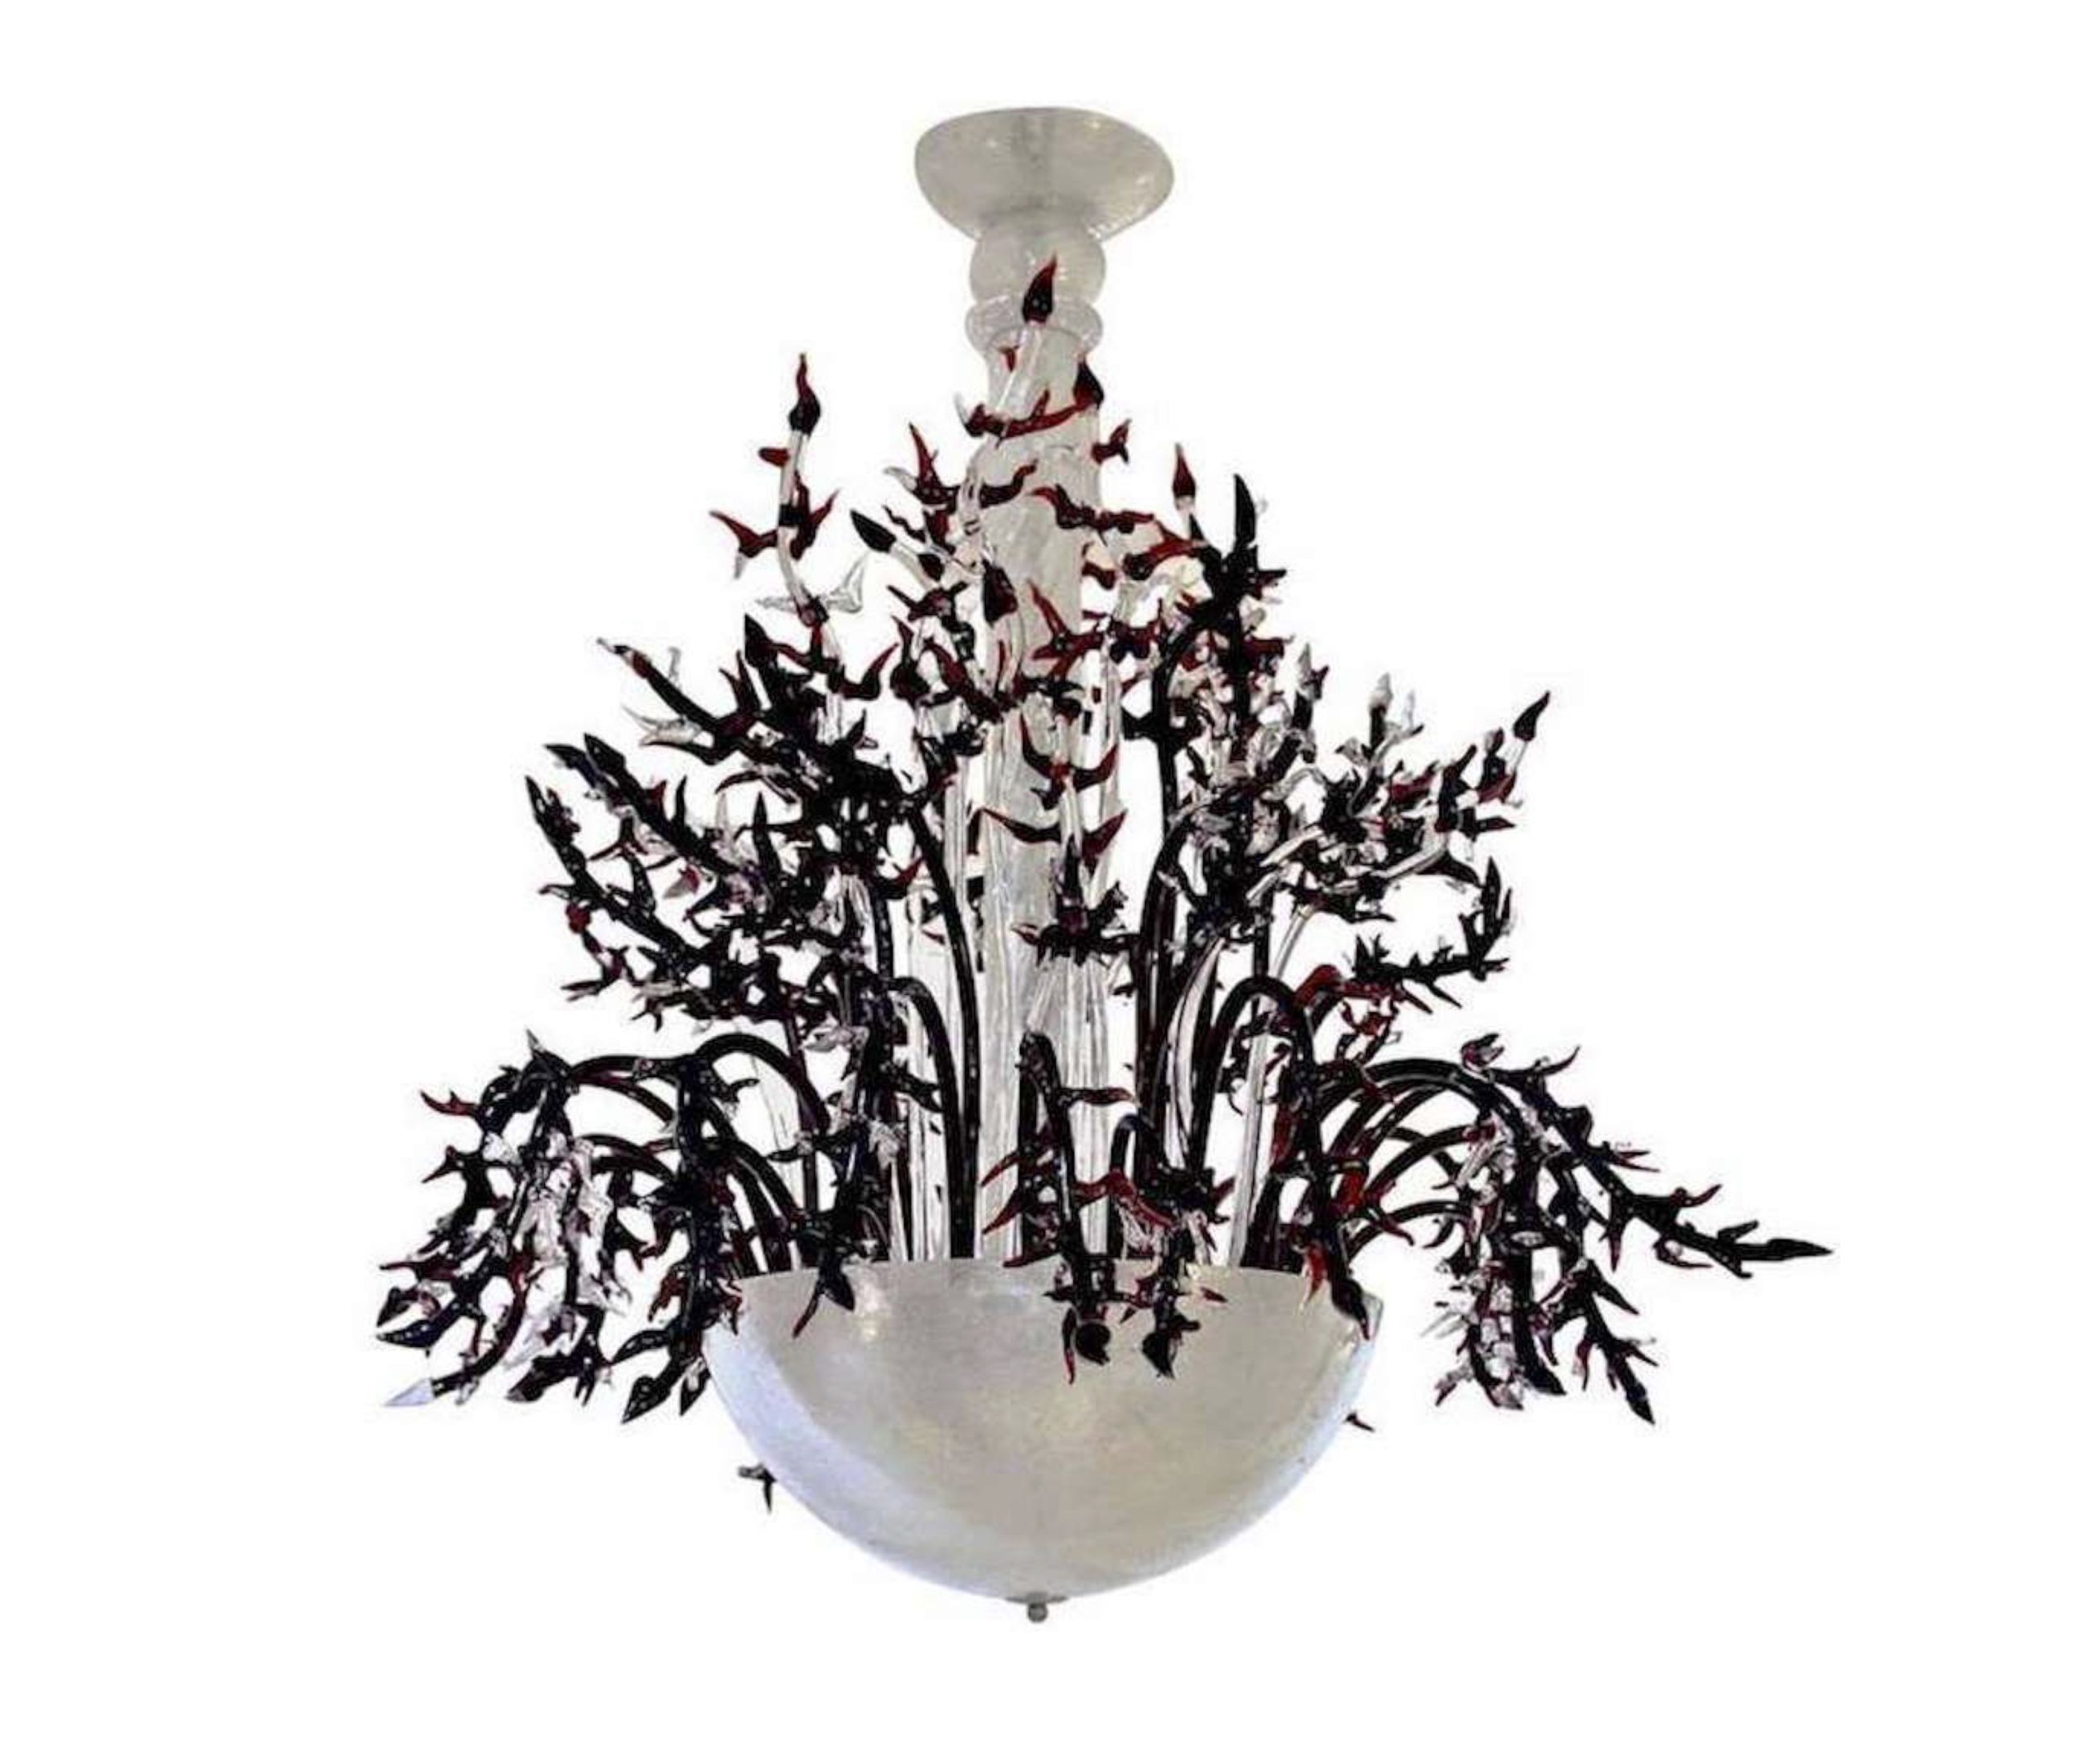 cosulich_interiors_and_antiques_products_new_york_design_1980s_Italian_White_Murano_Glass_Chandelier_Decor-scaled-1